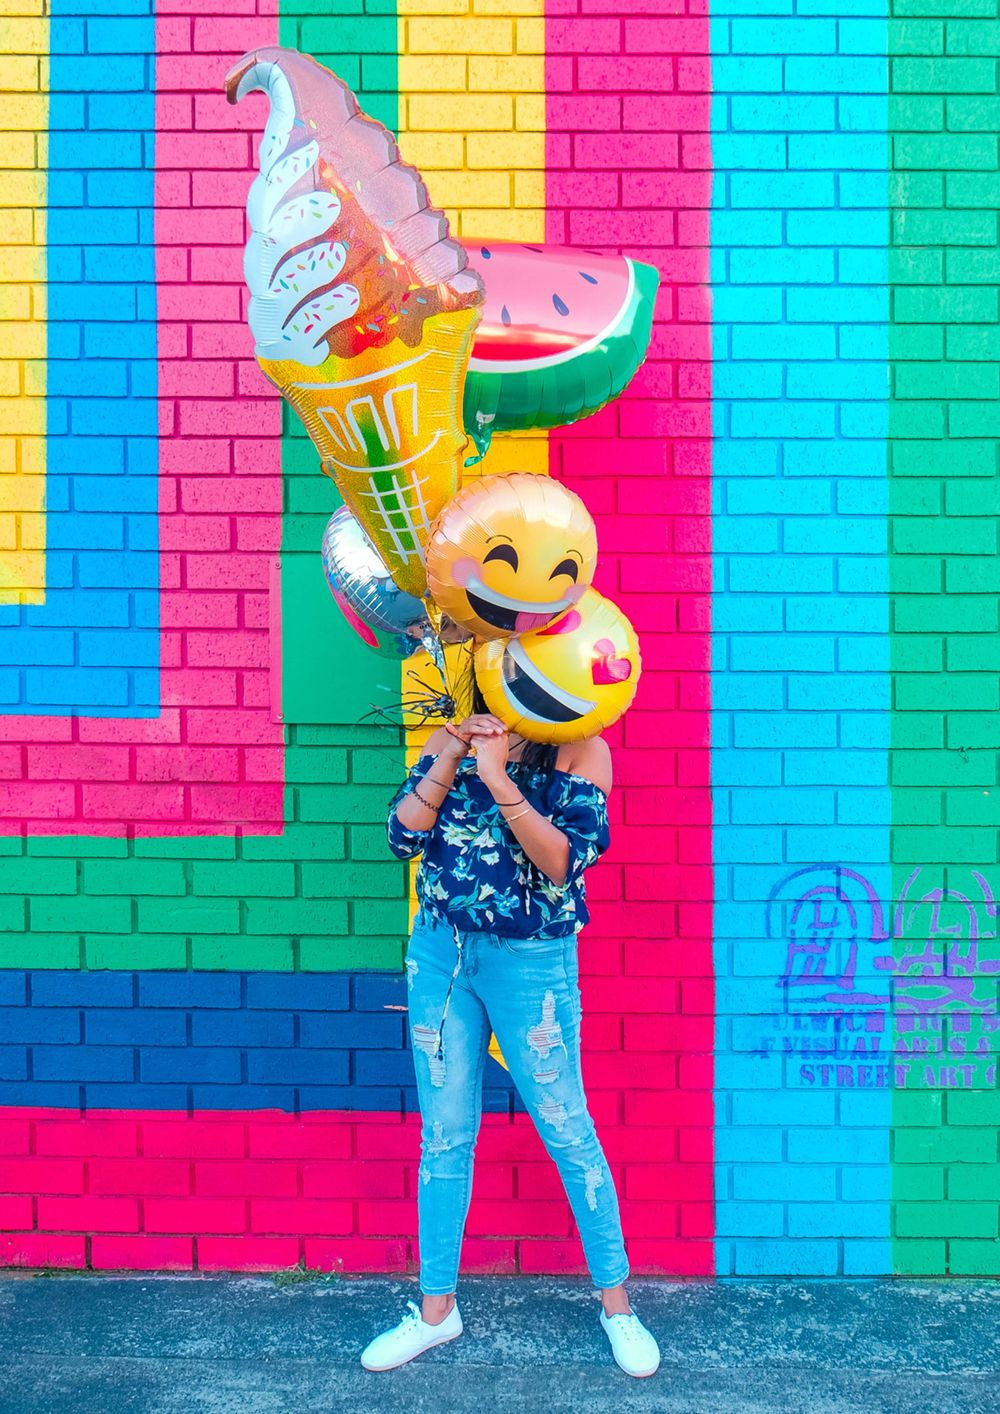 Girl With Balloons Colorful Brick Background